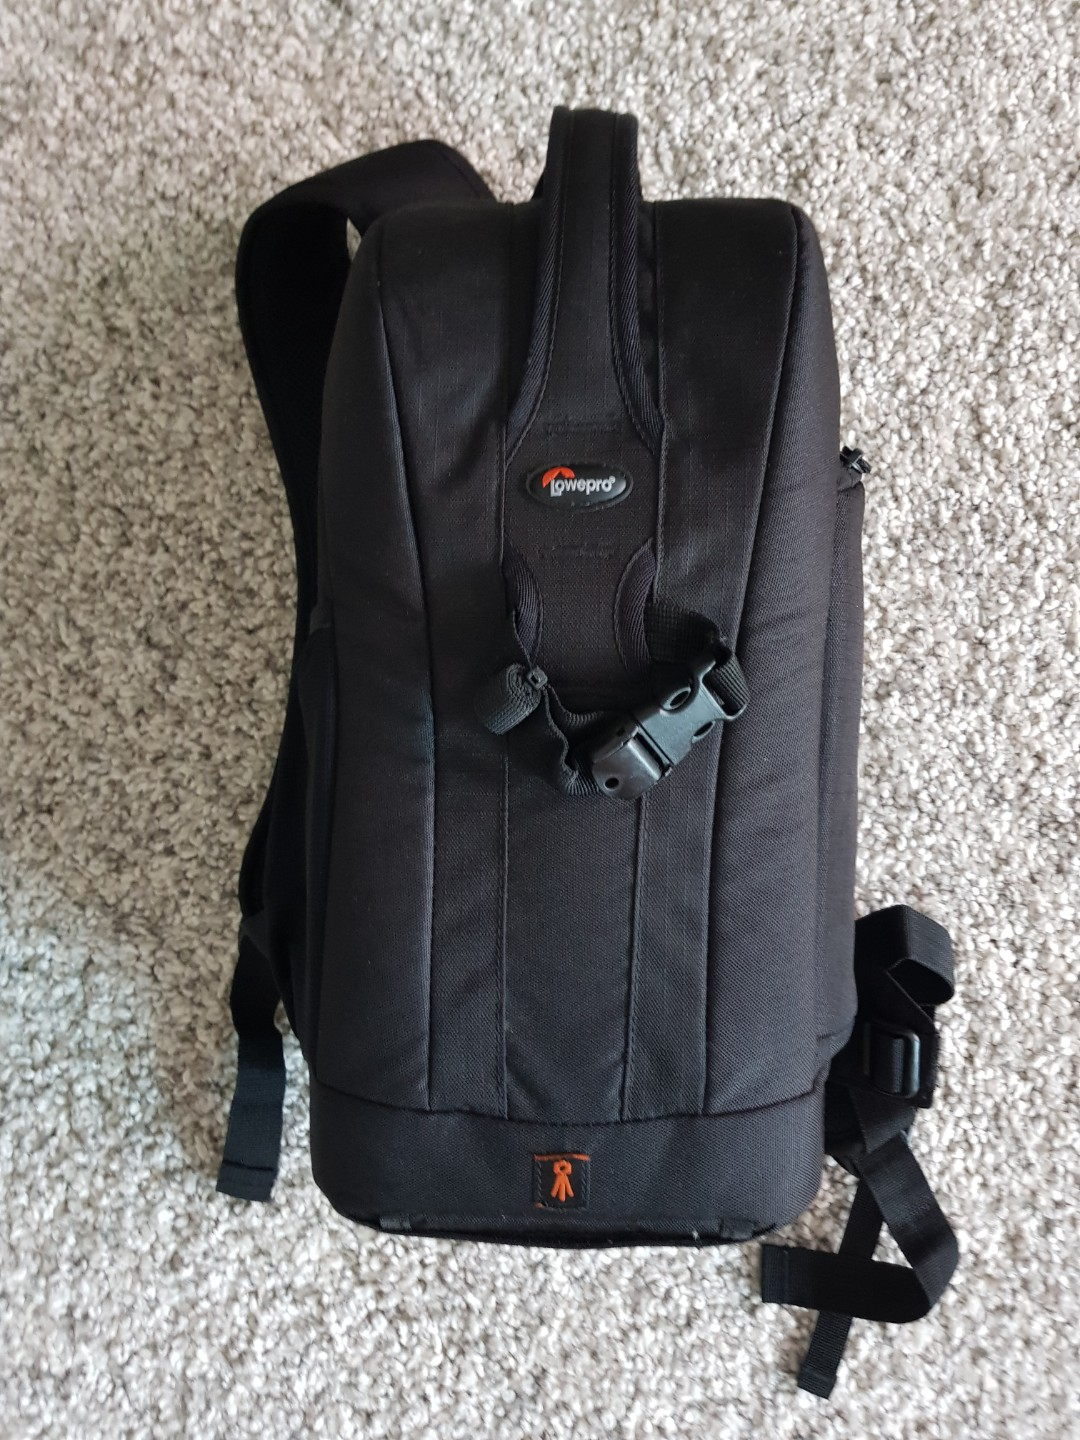 Lowepro Flipside 200 Photography Camera Accessories Bags Streetline Sh 120 Photo